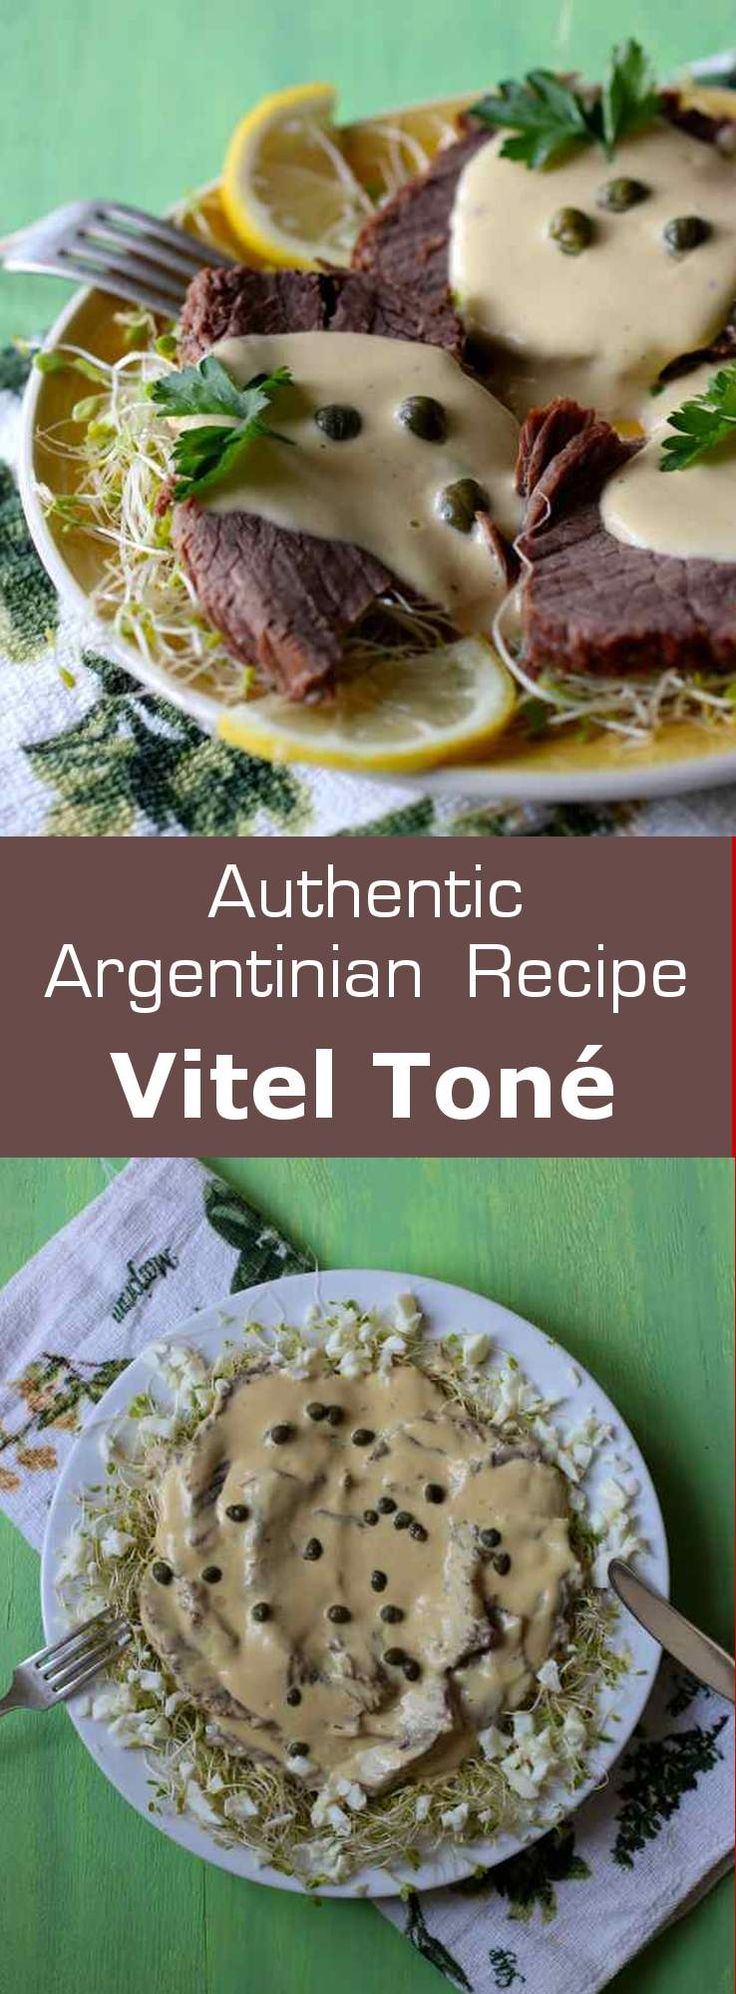 96 best 196 latin american recipes images on pinterest american vitel ton is a classic christmas argentinian dish originally from italy which consists of veal argentine recipesargentina foodfood forumfinder Gallery